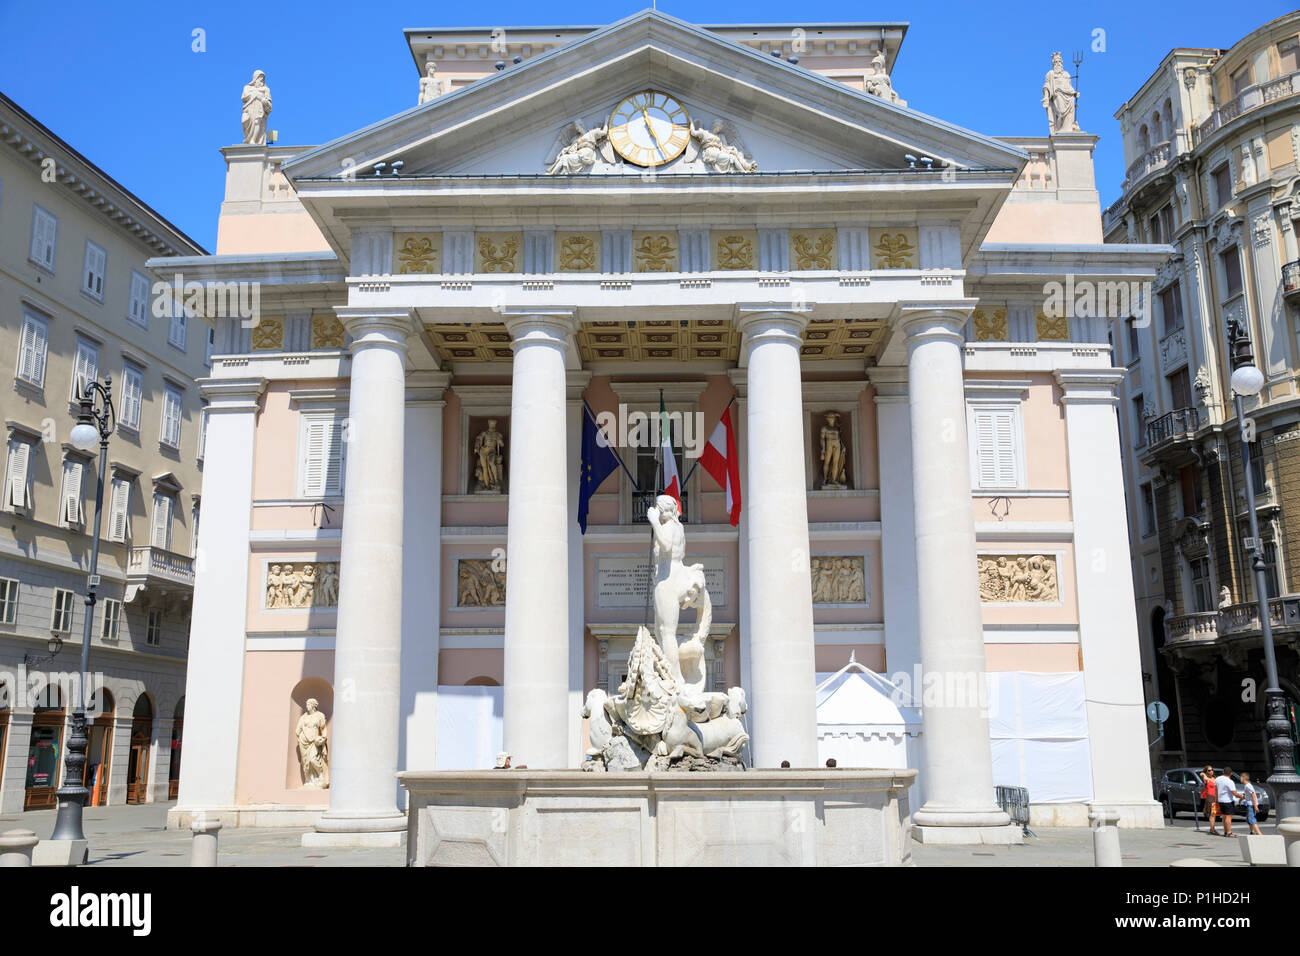 Building of the Chamber of Commerce in Piazza della Borsa, Trieste, Italy. - Stock Image